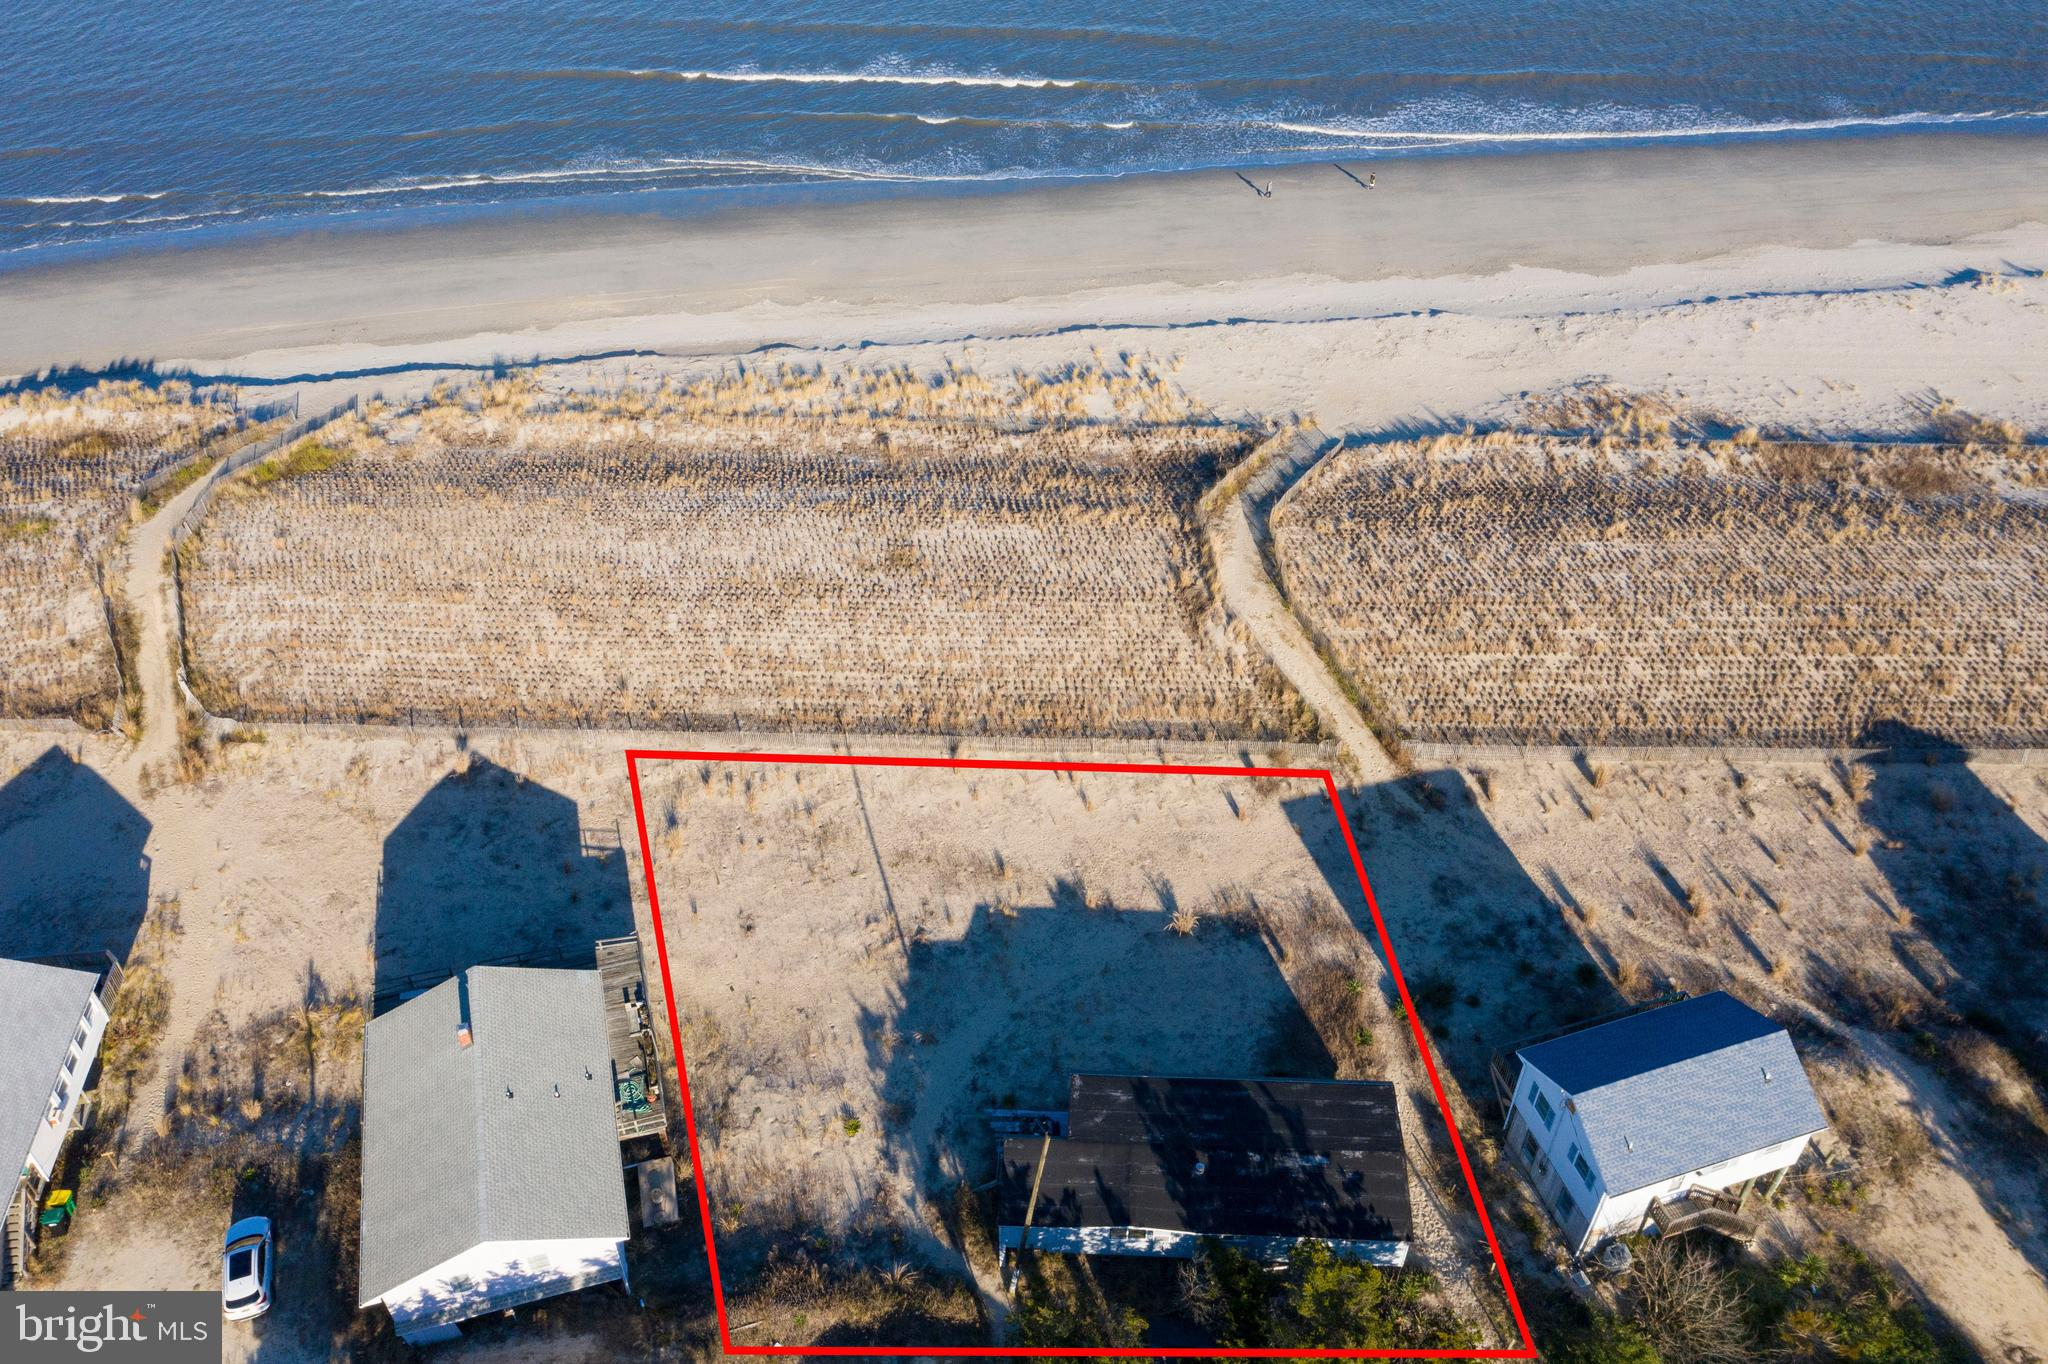 GREAT OPPORTUNITY TO BUILD YOUR WATER FRONT CUSTOM BEACH HOME OR REHAB THE CURRENT STRUCTURE.  Double lot for room to build your dream home you've always wanted. Spectacular views allow you to watch wonderful sunrises, enjoy the waves and dolphin watching and walk off your newly built home and enjoy the sand between your toes and fishing. Broadkill Beach is a quiet spot for you to kick back, relax and enjoy the beach and all the fun activities it has to offer. Conveniently located, this property is close to historic downtown Milton where you can enjoy shopping, dining and grocery shopping away from the crowds.  Also, 20-30 minutes drive to Lewes  and Rehoboth Beaches.  Property is 2 lots combined into 1 parcel and currently has a home on the property that is being sold in as is condition.  Do not enter property as the condition of the inside of the home is unknown.